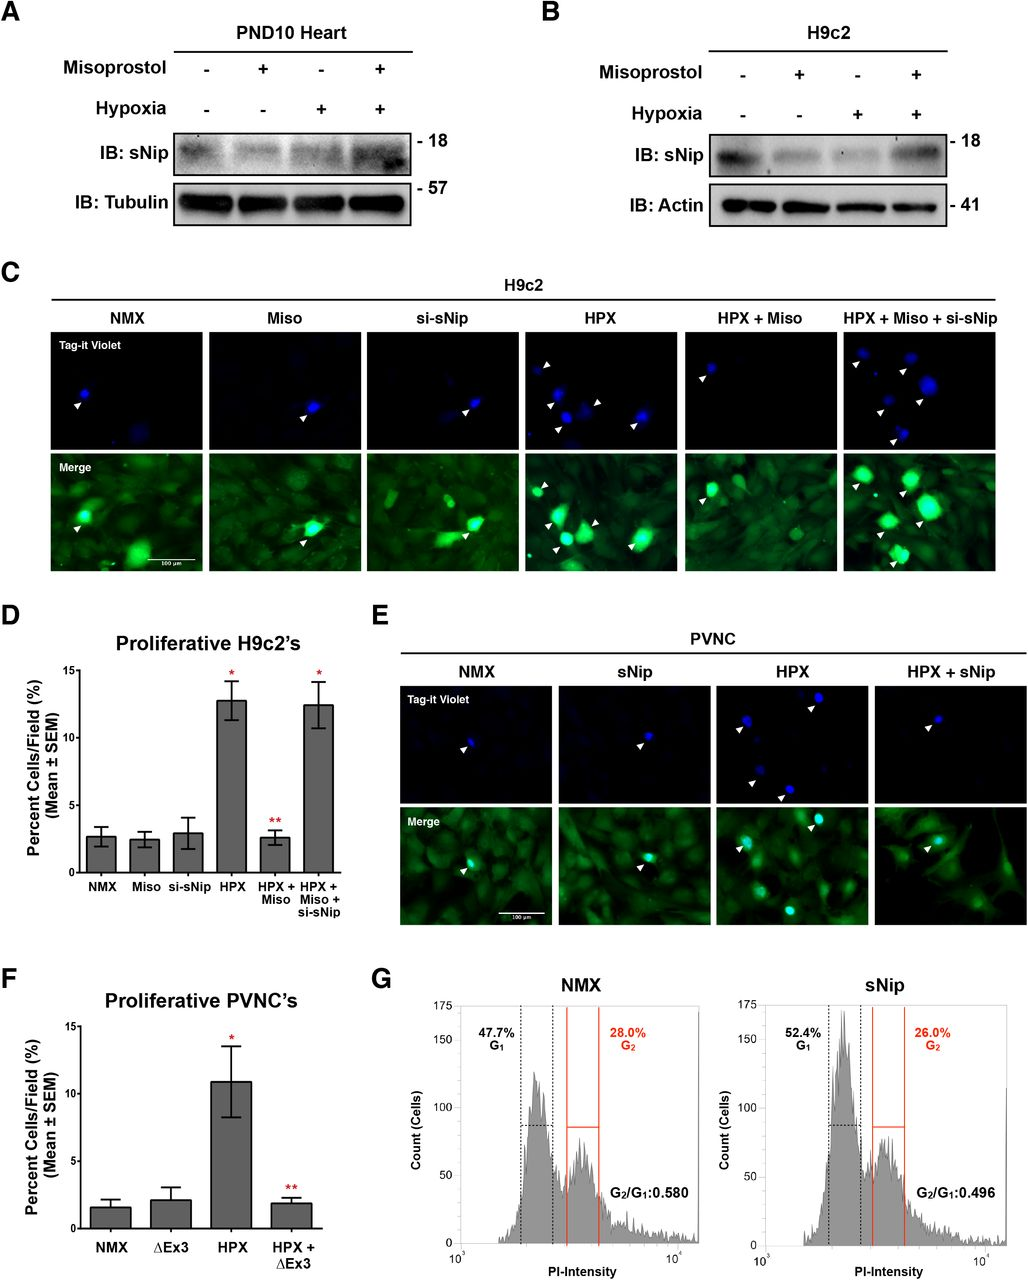 Misoprostol promotes nuclear calcium accumulation and regulates gene expression. (A) H9c2 cells treated with 10 μM misoprostol (Miso) ± 10% O 2 (HPX) for 48 hours. NLS-R-GECO (red) was used to indicate nuclear calcium content in all conditions. Cells were stained with hoechst (blue) and imaged by standard fluorescence microscopy. (B) Quantification of cells in (A), where red fluorescent signal was normalized to cell area and quantified in 10 random fields. (C) H9c2 cells treated as in (A) and Myc-NFATc3 was transfected into each condition. Cells were fixed, stained with hoechst (blue), and immunofluorescence was performed using a Myc primary antibody (green). Cells were then imaged by standard fluorescence microscopy. (D) Quantification of cells in (C), where the number of cells with nuclear Myc-NFATc3, is presented as a percentage of the number of cells/field in 5 random fields. (E) H9c2 cells treated as in (A), Protein extracts were subjected to nuclear/cytosolic fractionation and were immunoblotted, as indicated. (F) H9c2's treated as in (A). 2 μM CsA was added to half of the conditions for 48 hours in order to inhibit calcineurin-NFAT signalling. Peredox-mCherry (where Red=NAD + , Green=NADH) was used to indicate cytosolic reduced or oxidized NAD content in all conditions. Cells were imaged by standard fluorescence microscopy. (G) Quantification of cells in (F), where the ratio of green fluorescence (NADH) to red fluorescent signal (NAD + ) in 15 random fields across 3 independent experiments. (H) Quantification of H9c2 cells treated with 10% O 2 (HPX) for 48 hours and transfected pcDNA3 (control) or myc-NFATc3. Peredox-mCherry was used to indicate cytosolic NAD content. The ratio of green fluorescence (NADH) to red fluorescent signal (NAD + ) was measured in > 15 random fields across 6 independent experiments. (I) H9c2's treated as in (H), cells were stained with Tag-it Violet (blue) and <t>calcein-AM</t> (green) and imaged by standard fluorescence microscopy. 